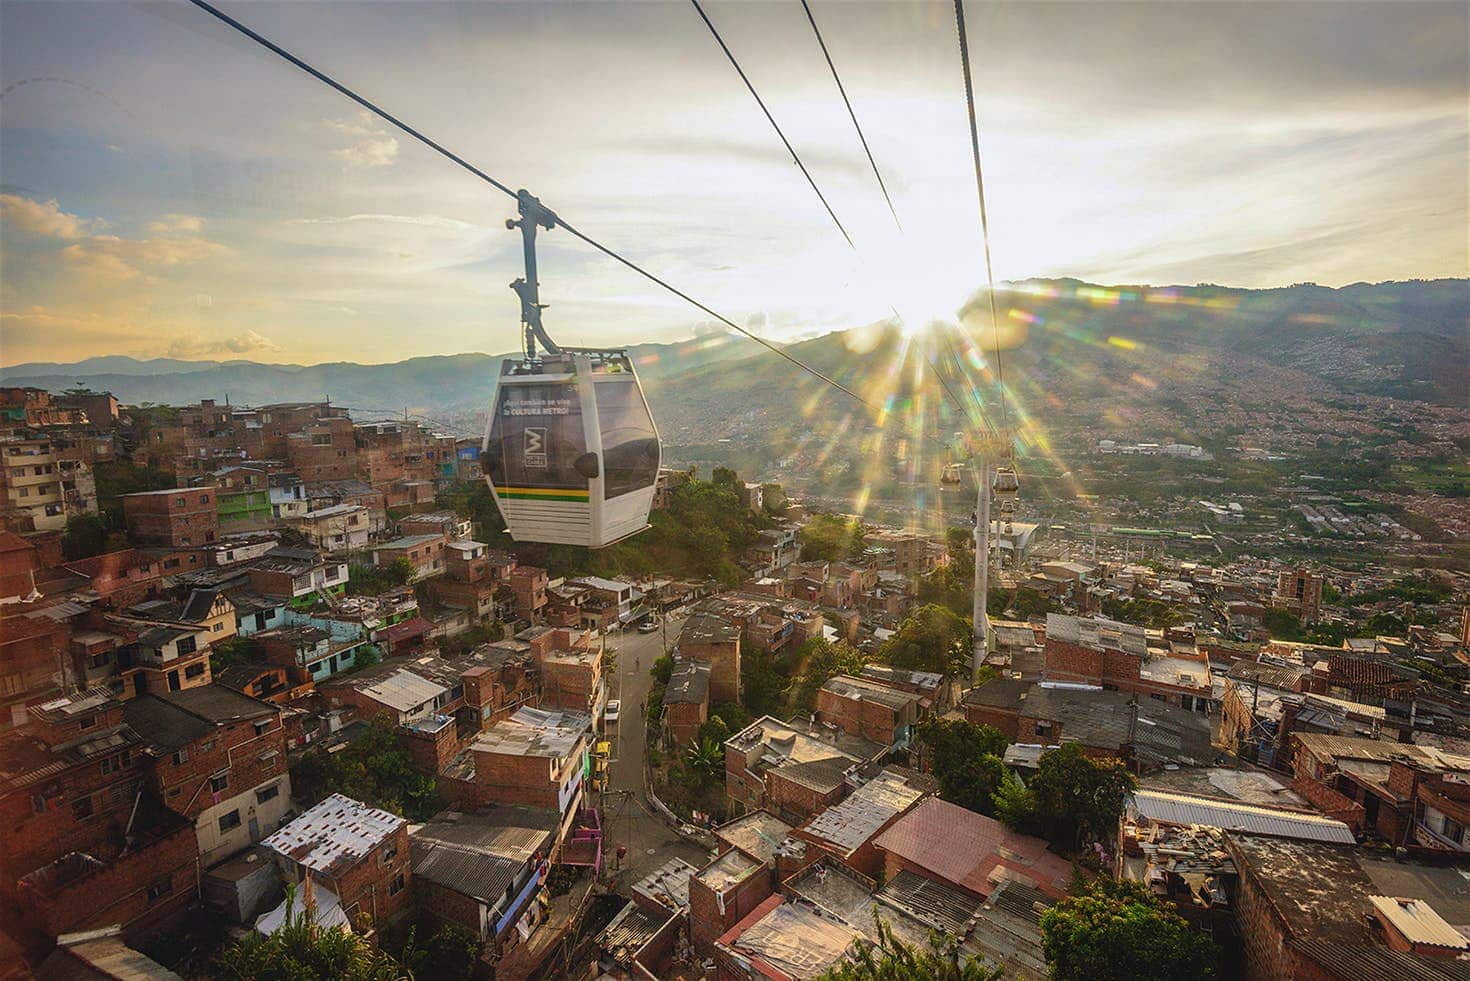 Metrocable Cable Cars in Medellin, Colombia